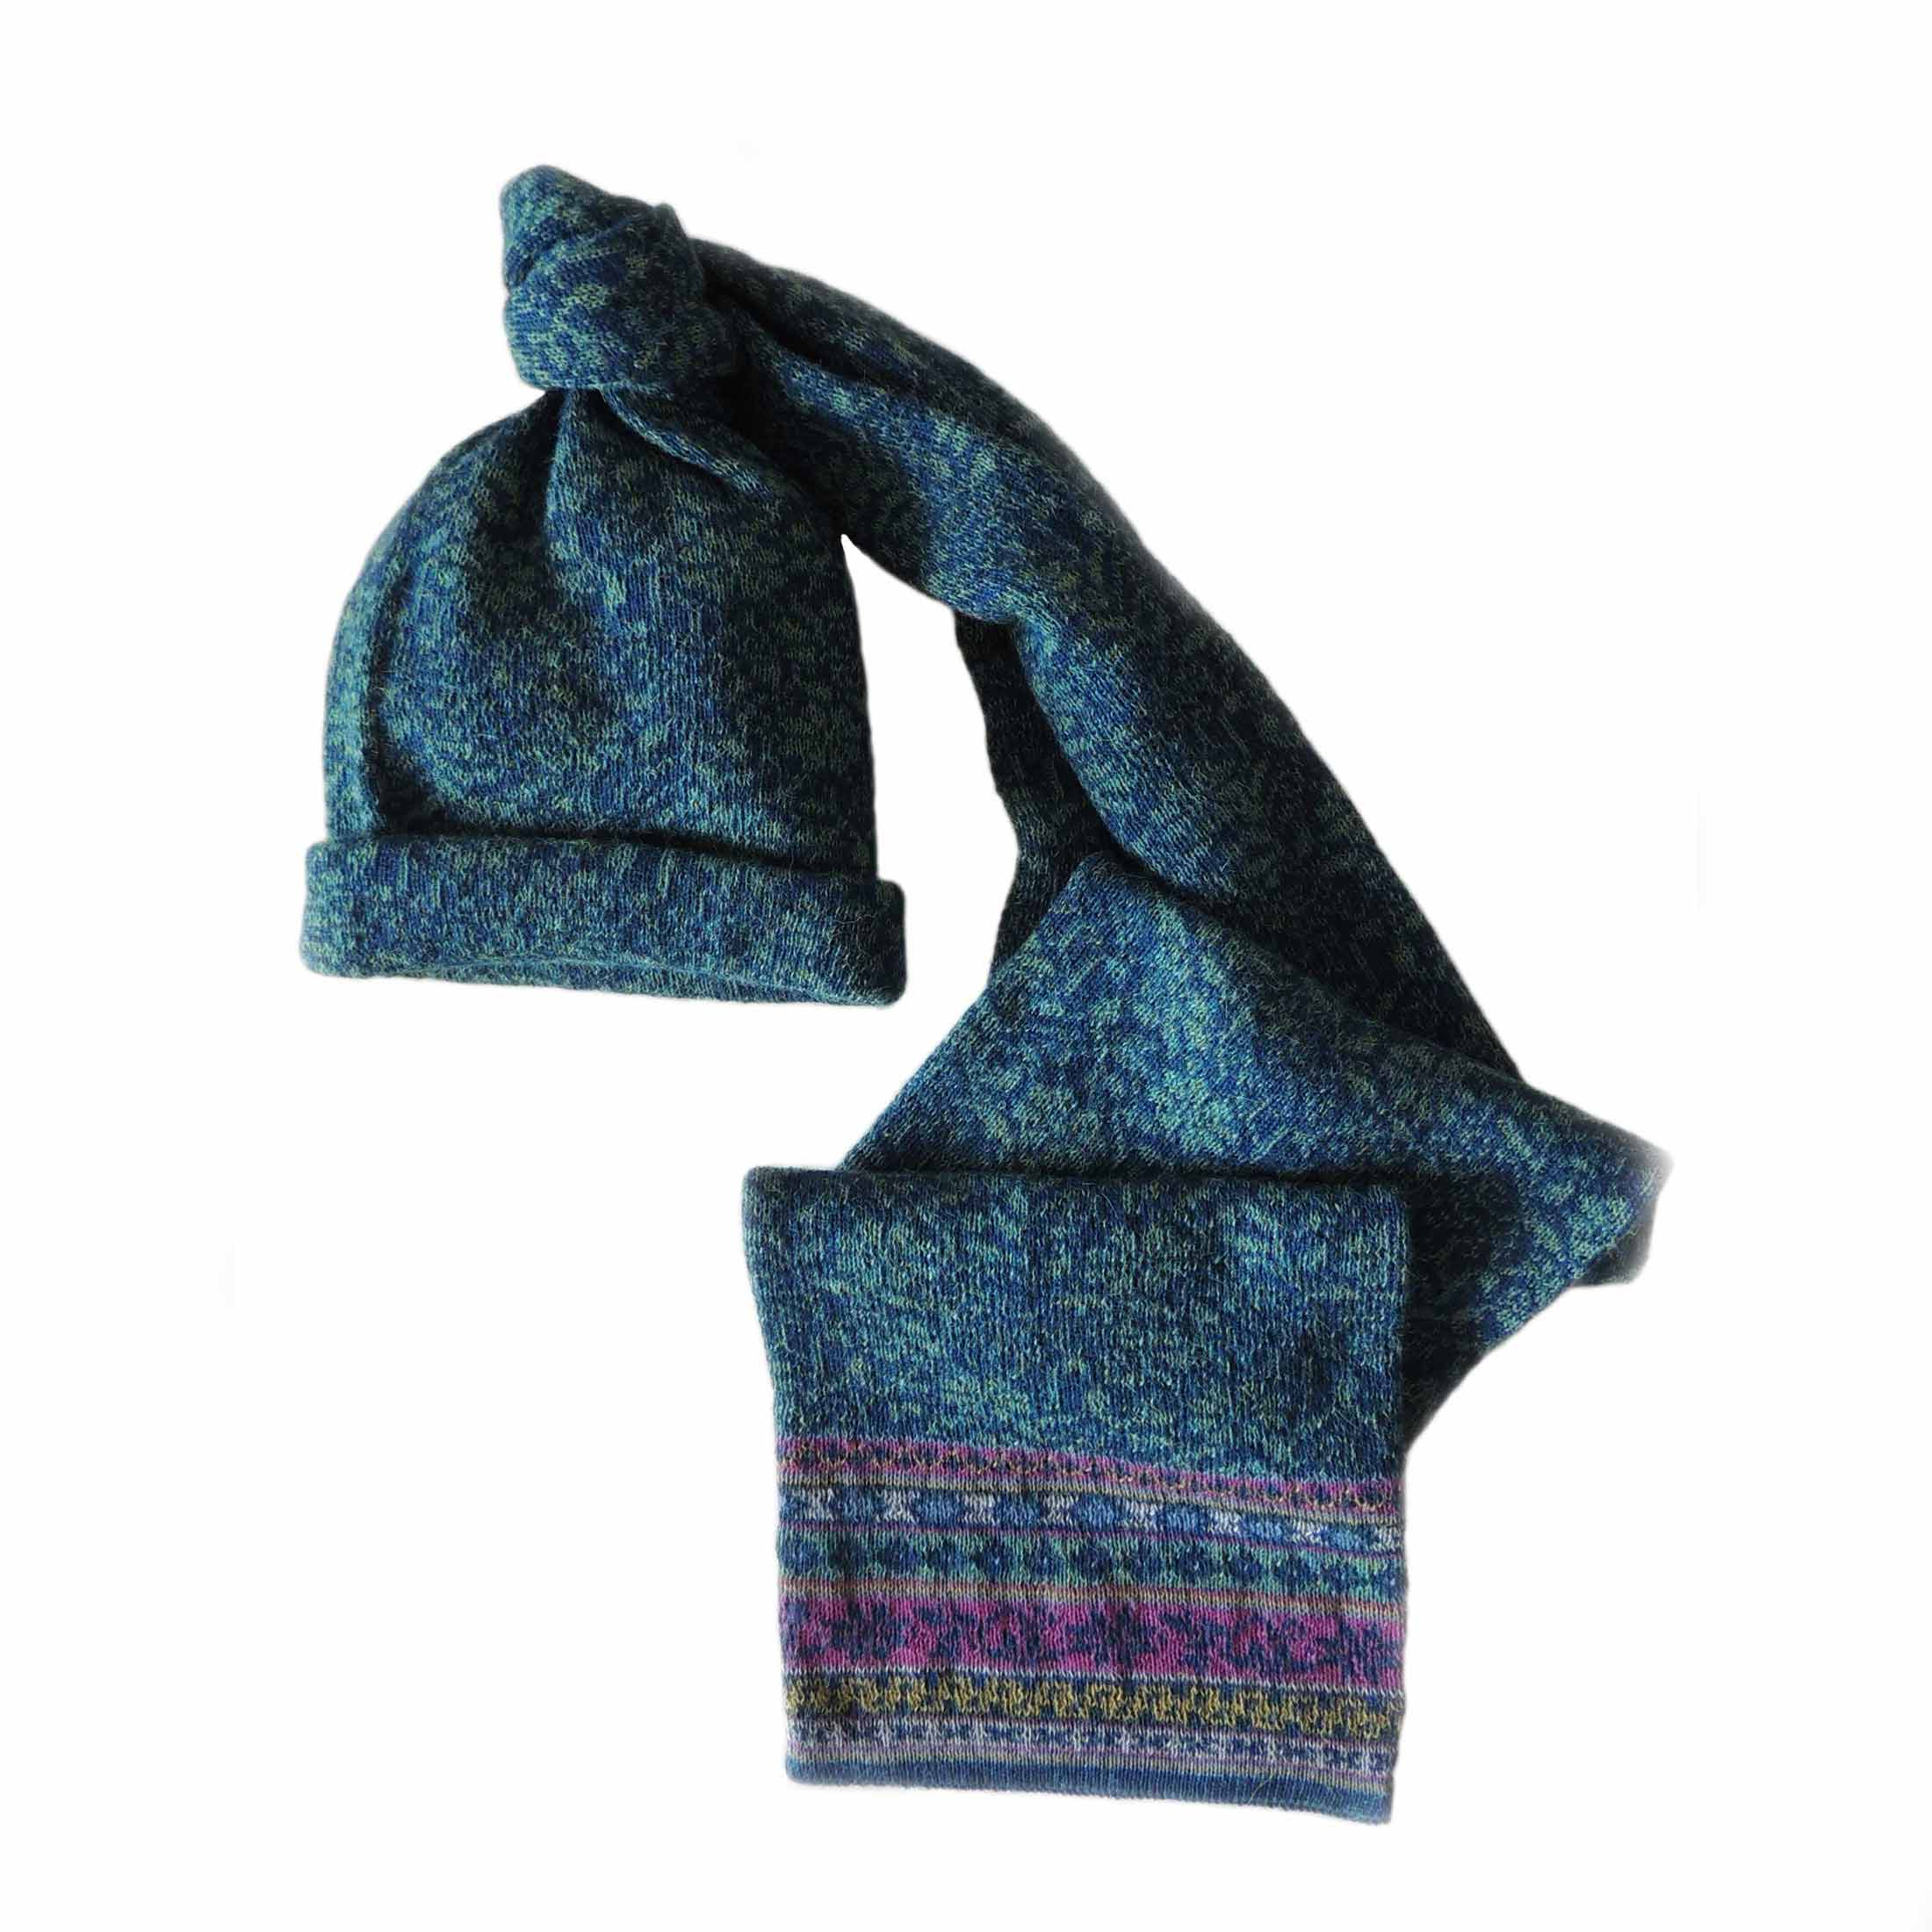 PFL knitwear Double knitted scarf Susan with jacquard flower pattern, in super soft 100% baby alpaca, turquoise blue.